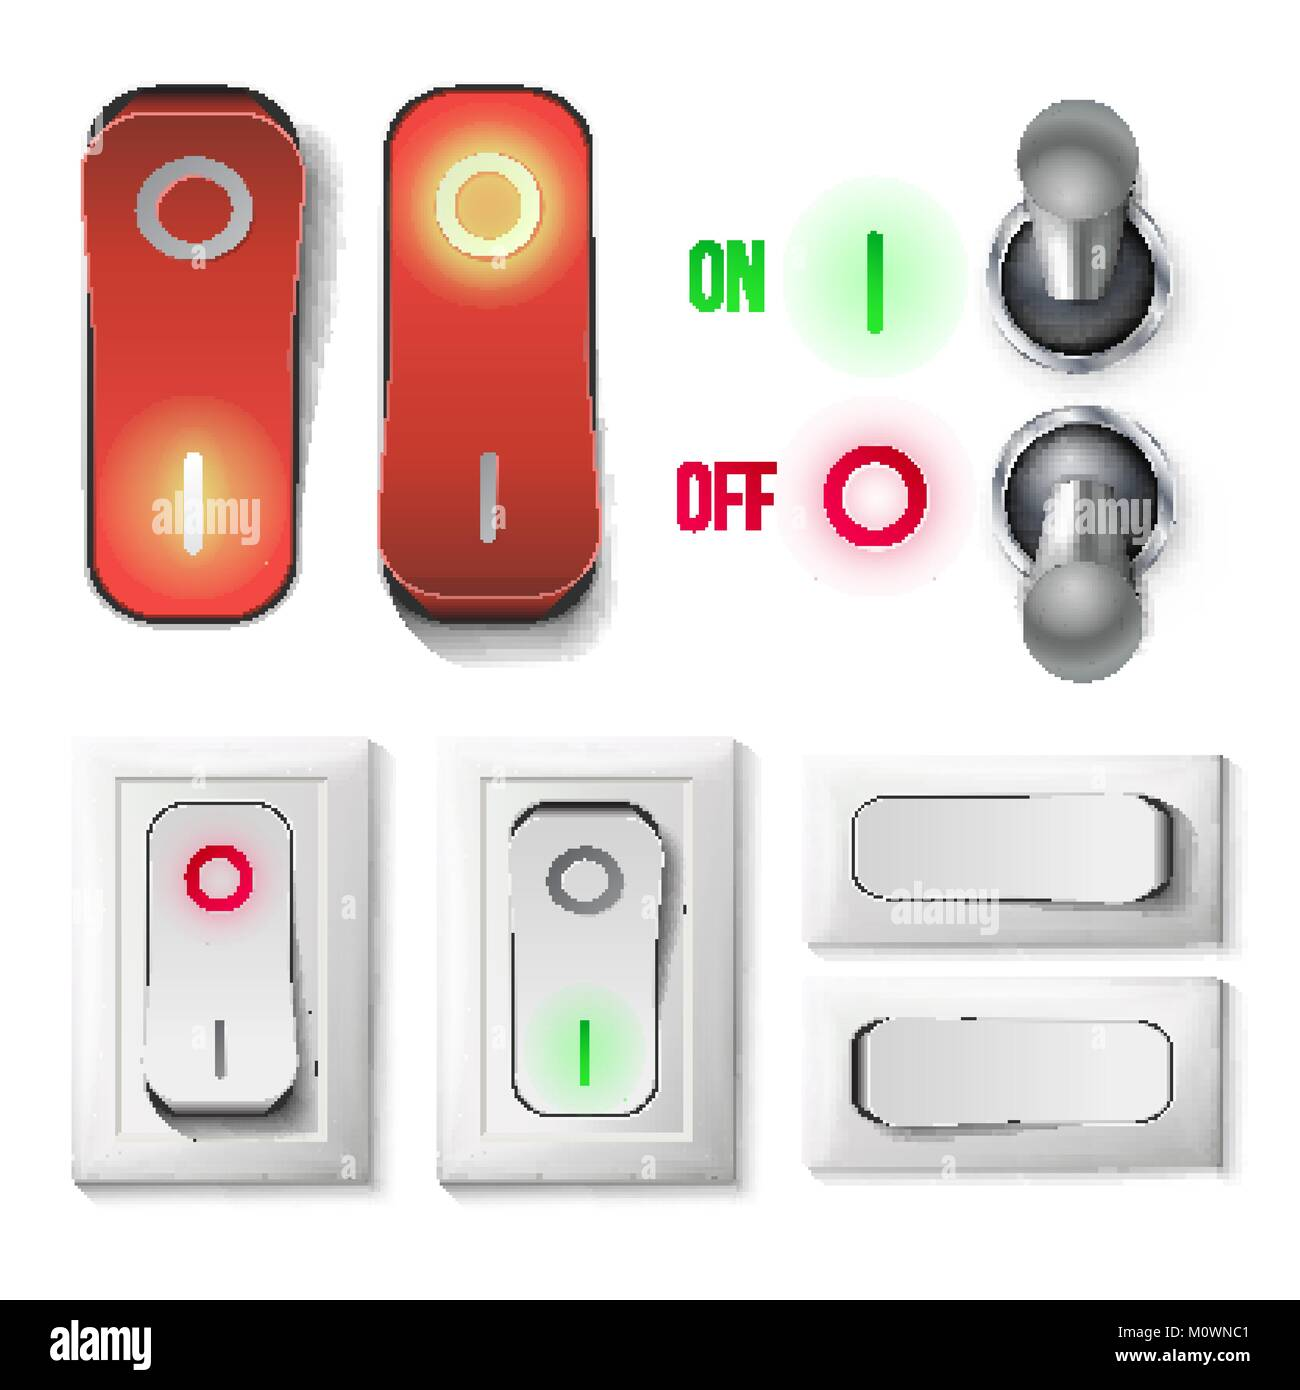 Toggle Switch Set Vector. Plastic And Metal Switches With On, Off Position. Isolated On White Button Illustration. - Stock Image